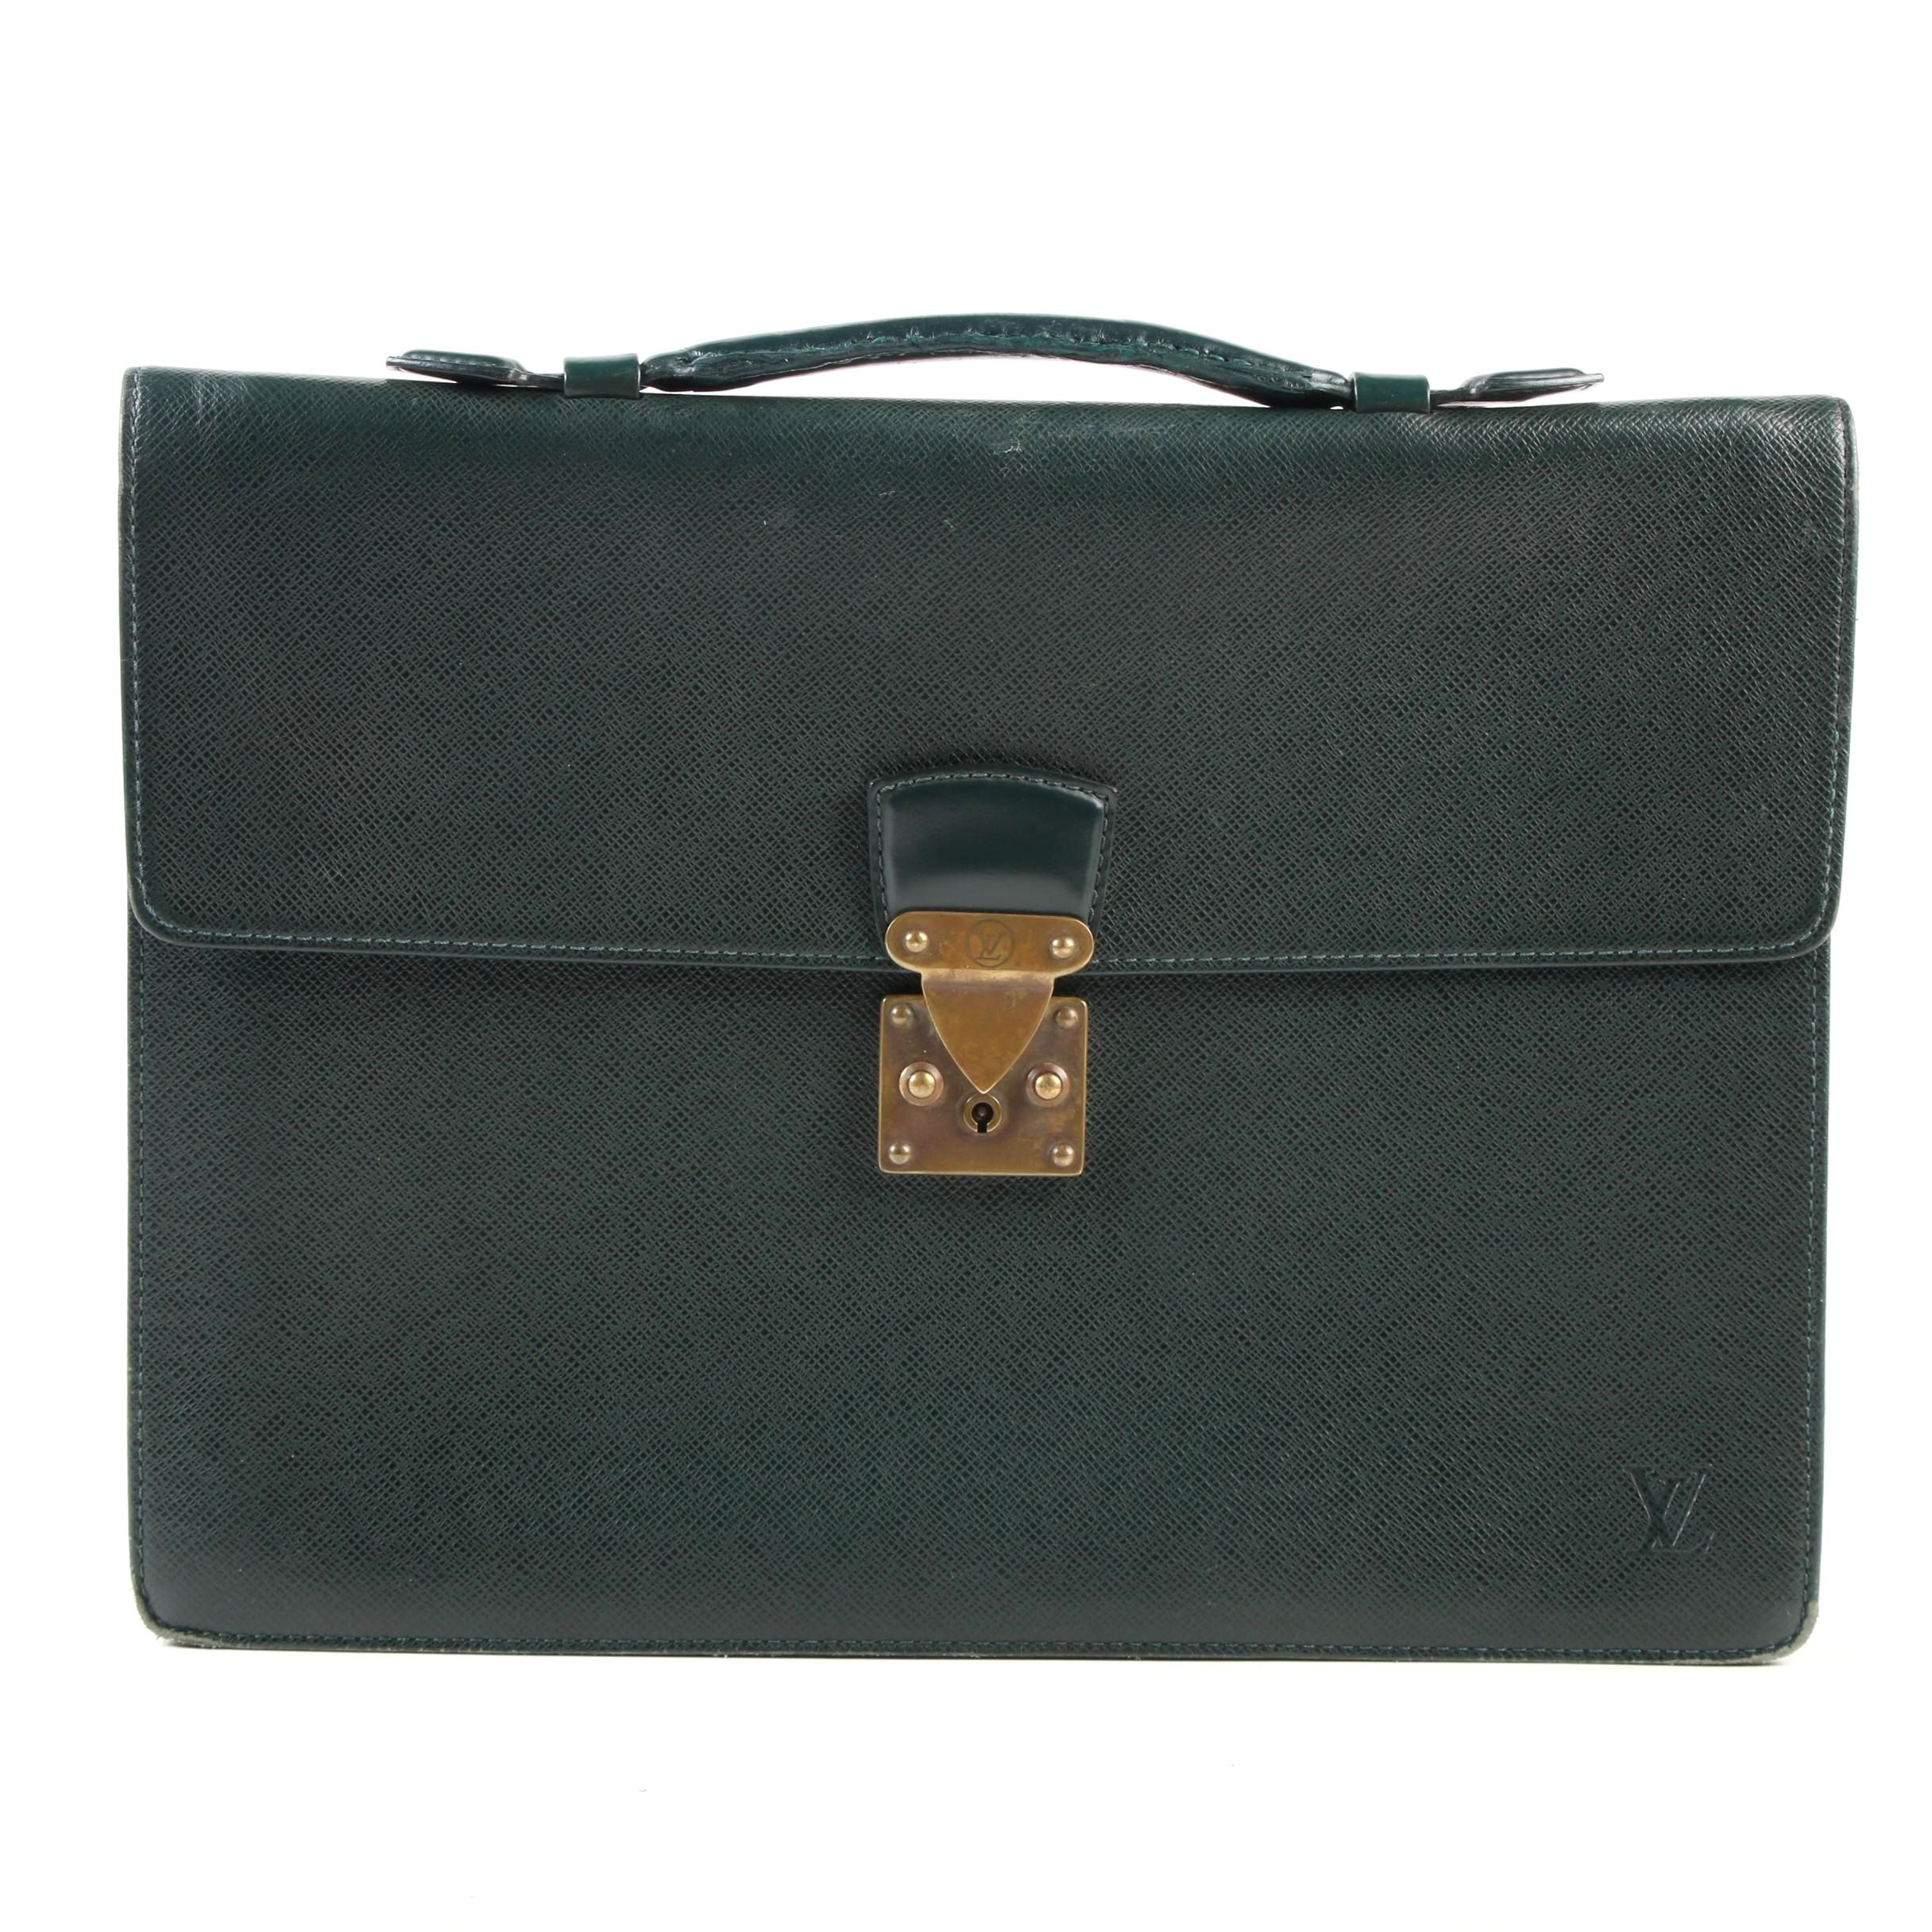 Louis Vuitton Paris Green Taiga Leather Briefcase